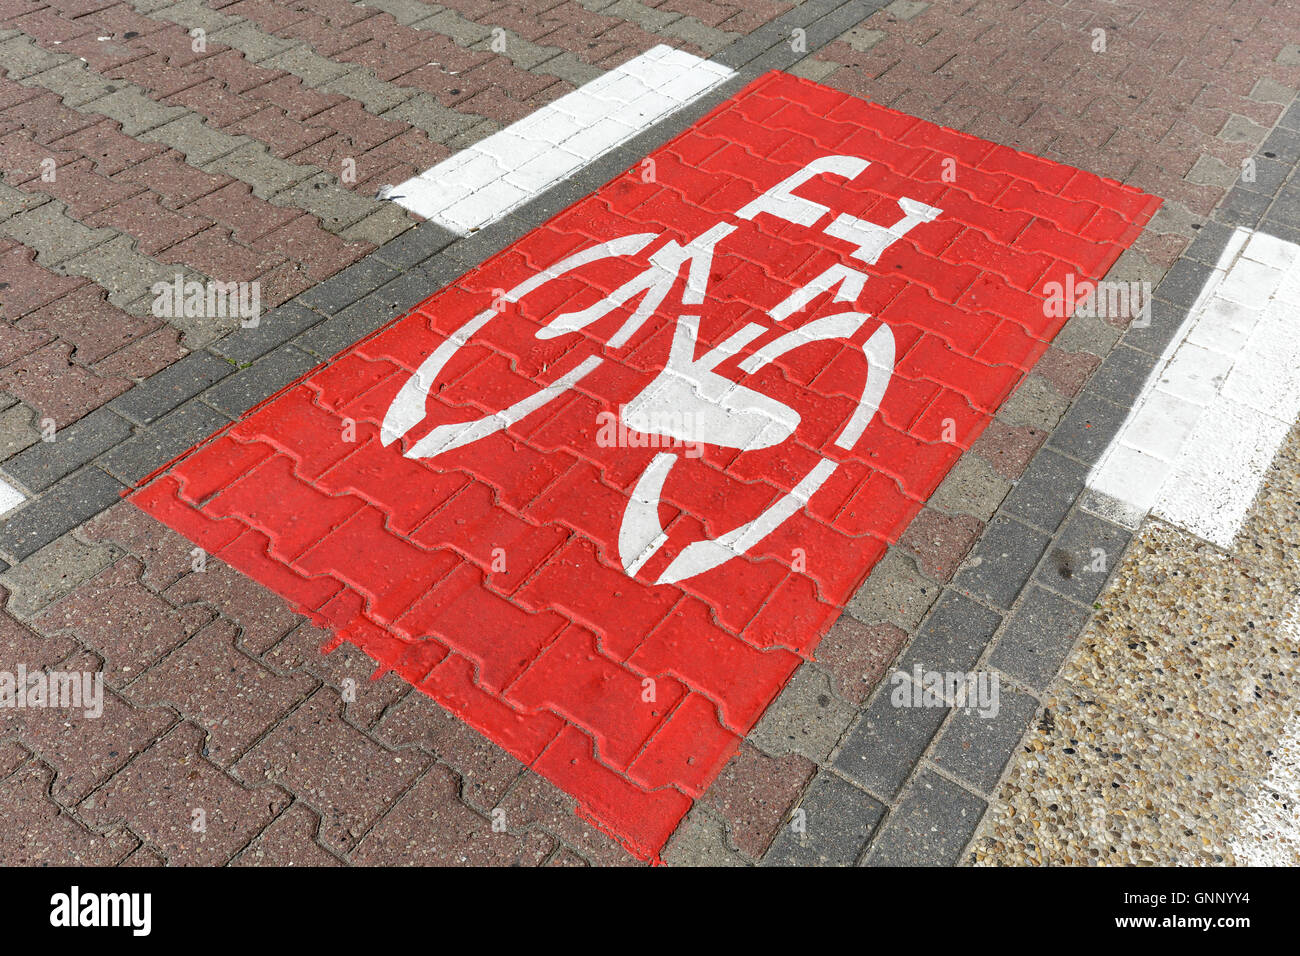 Bike lane sign it is marked on the road - Stock Image